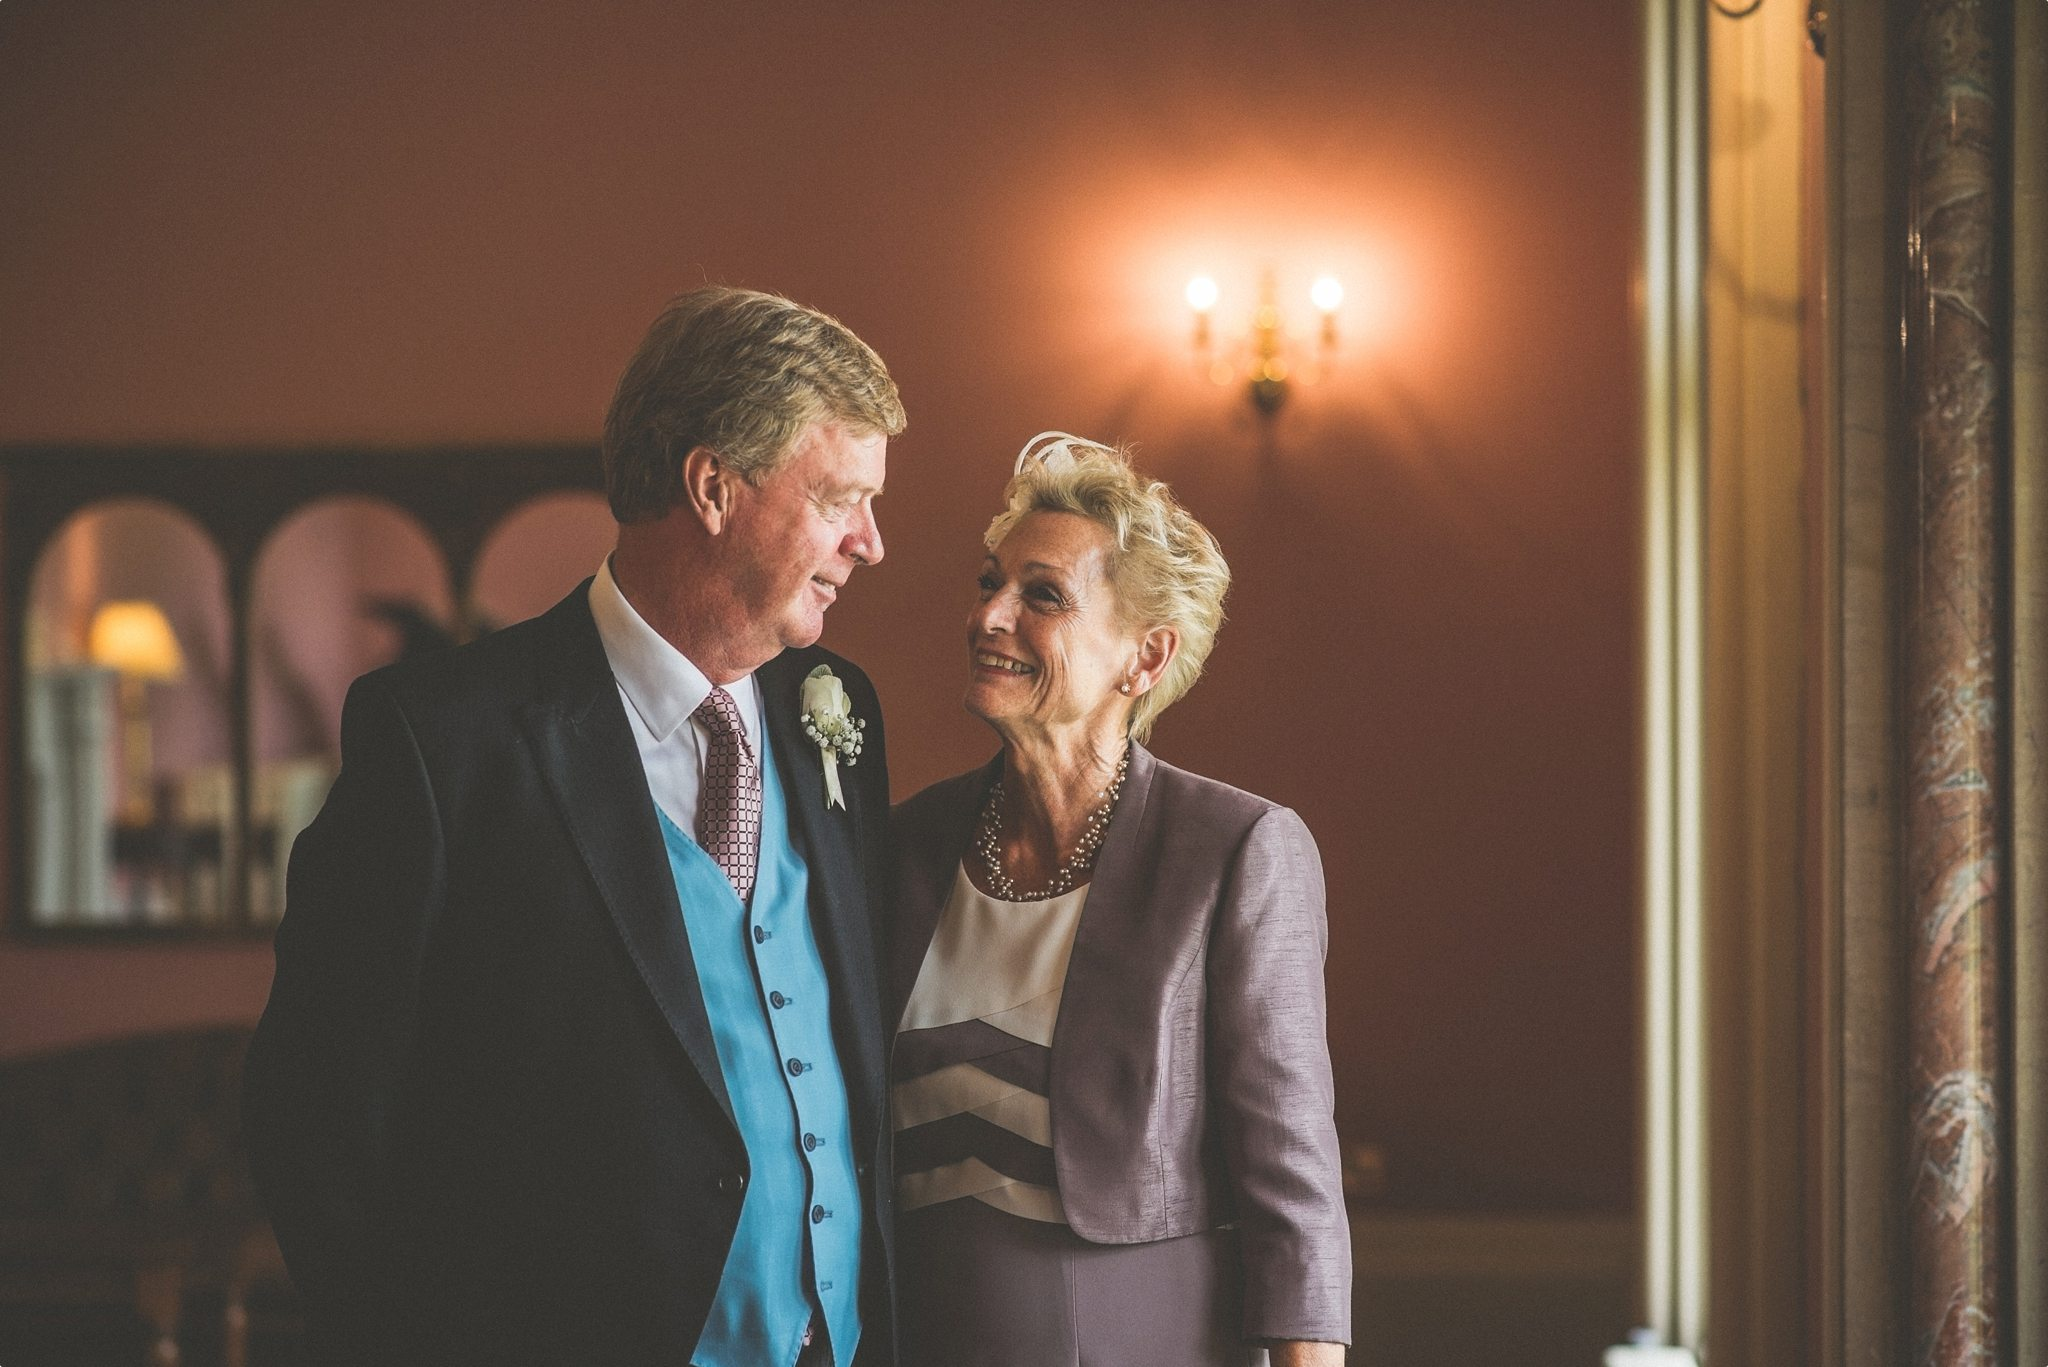 st-audries-park-wedding-maria-assia-photography-172